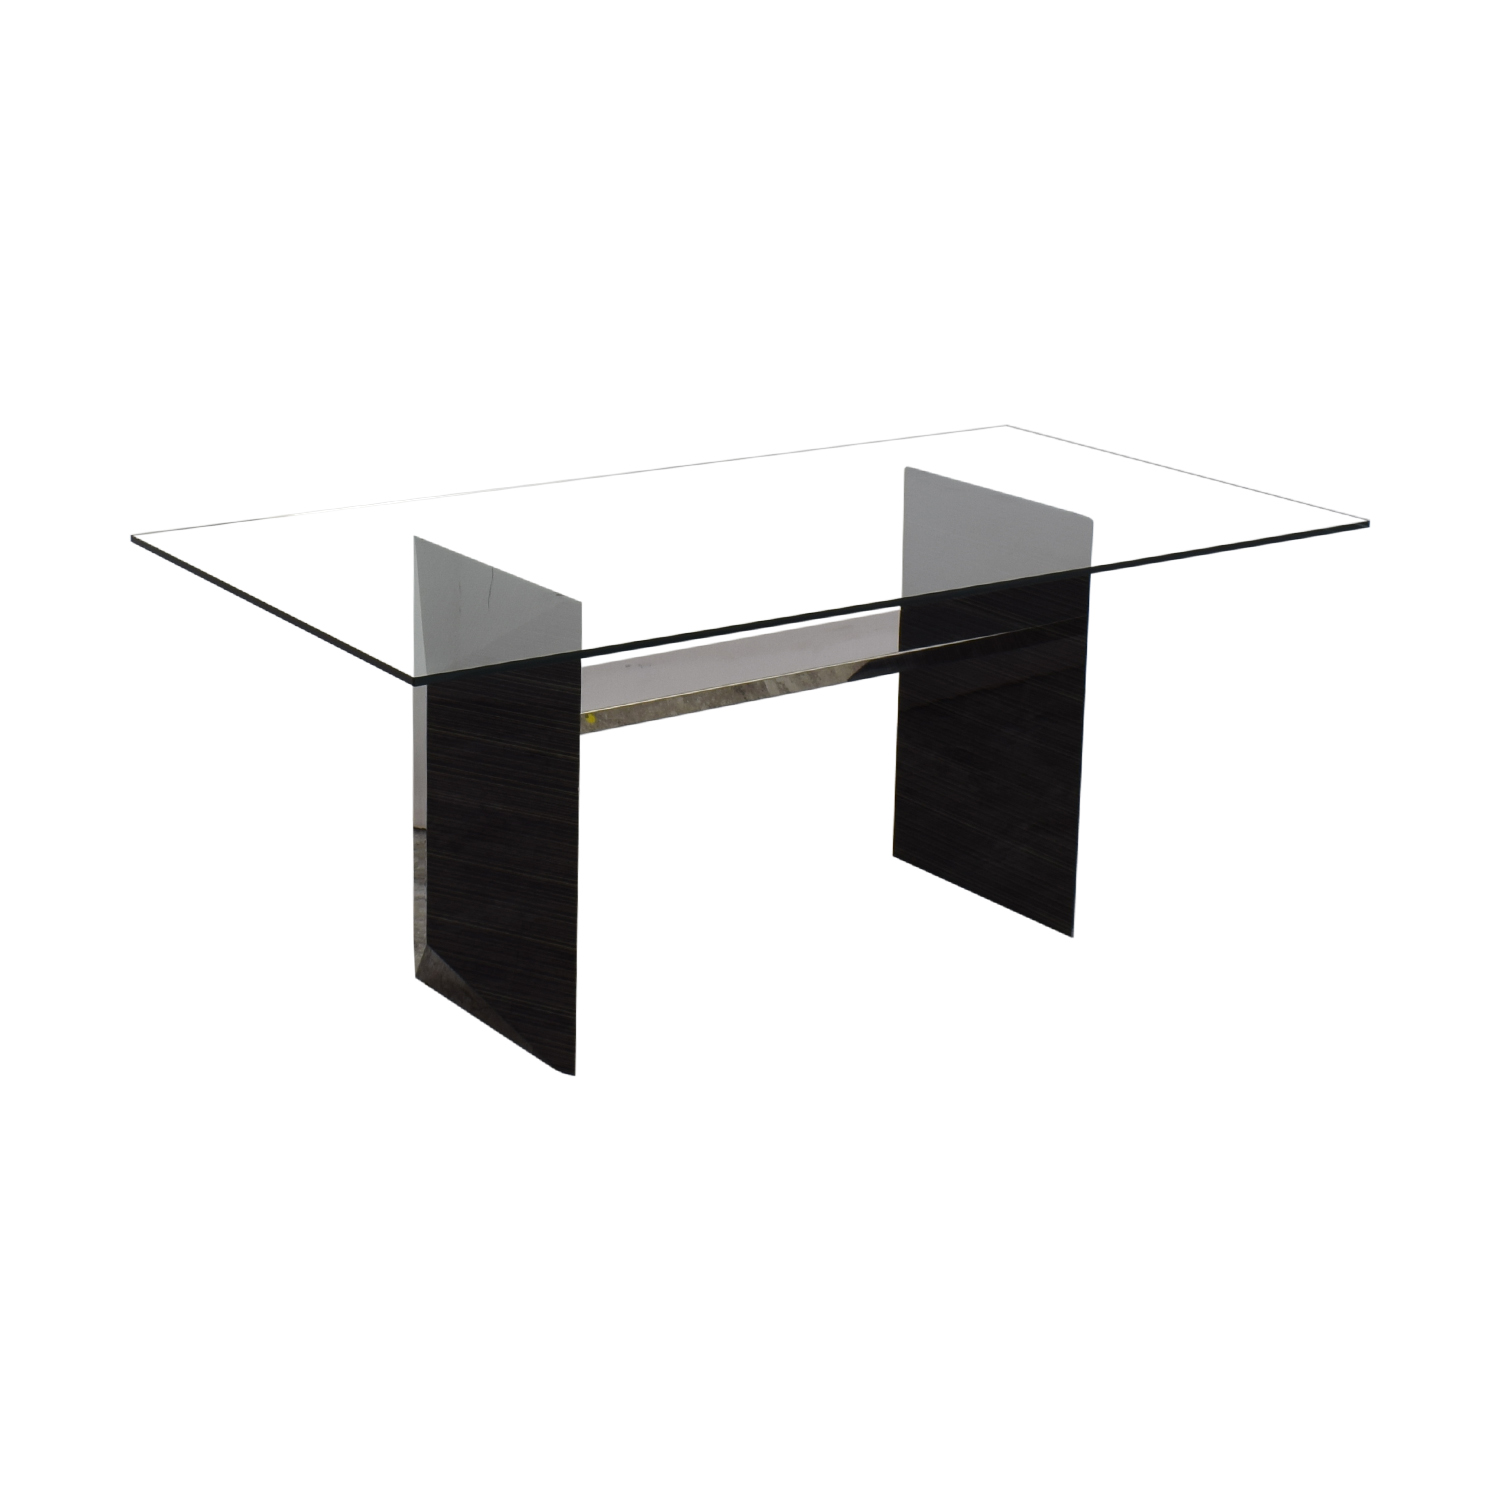 Rossetto Rossetto Minimalist Dining Table clear and black